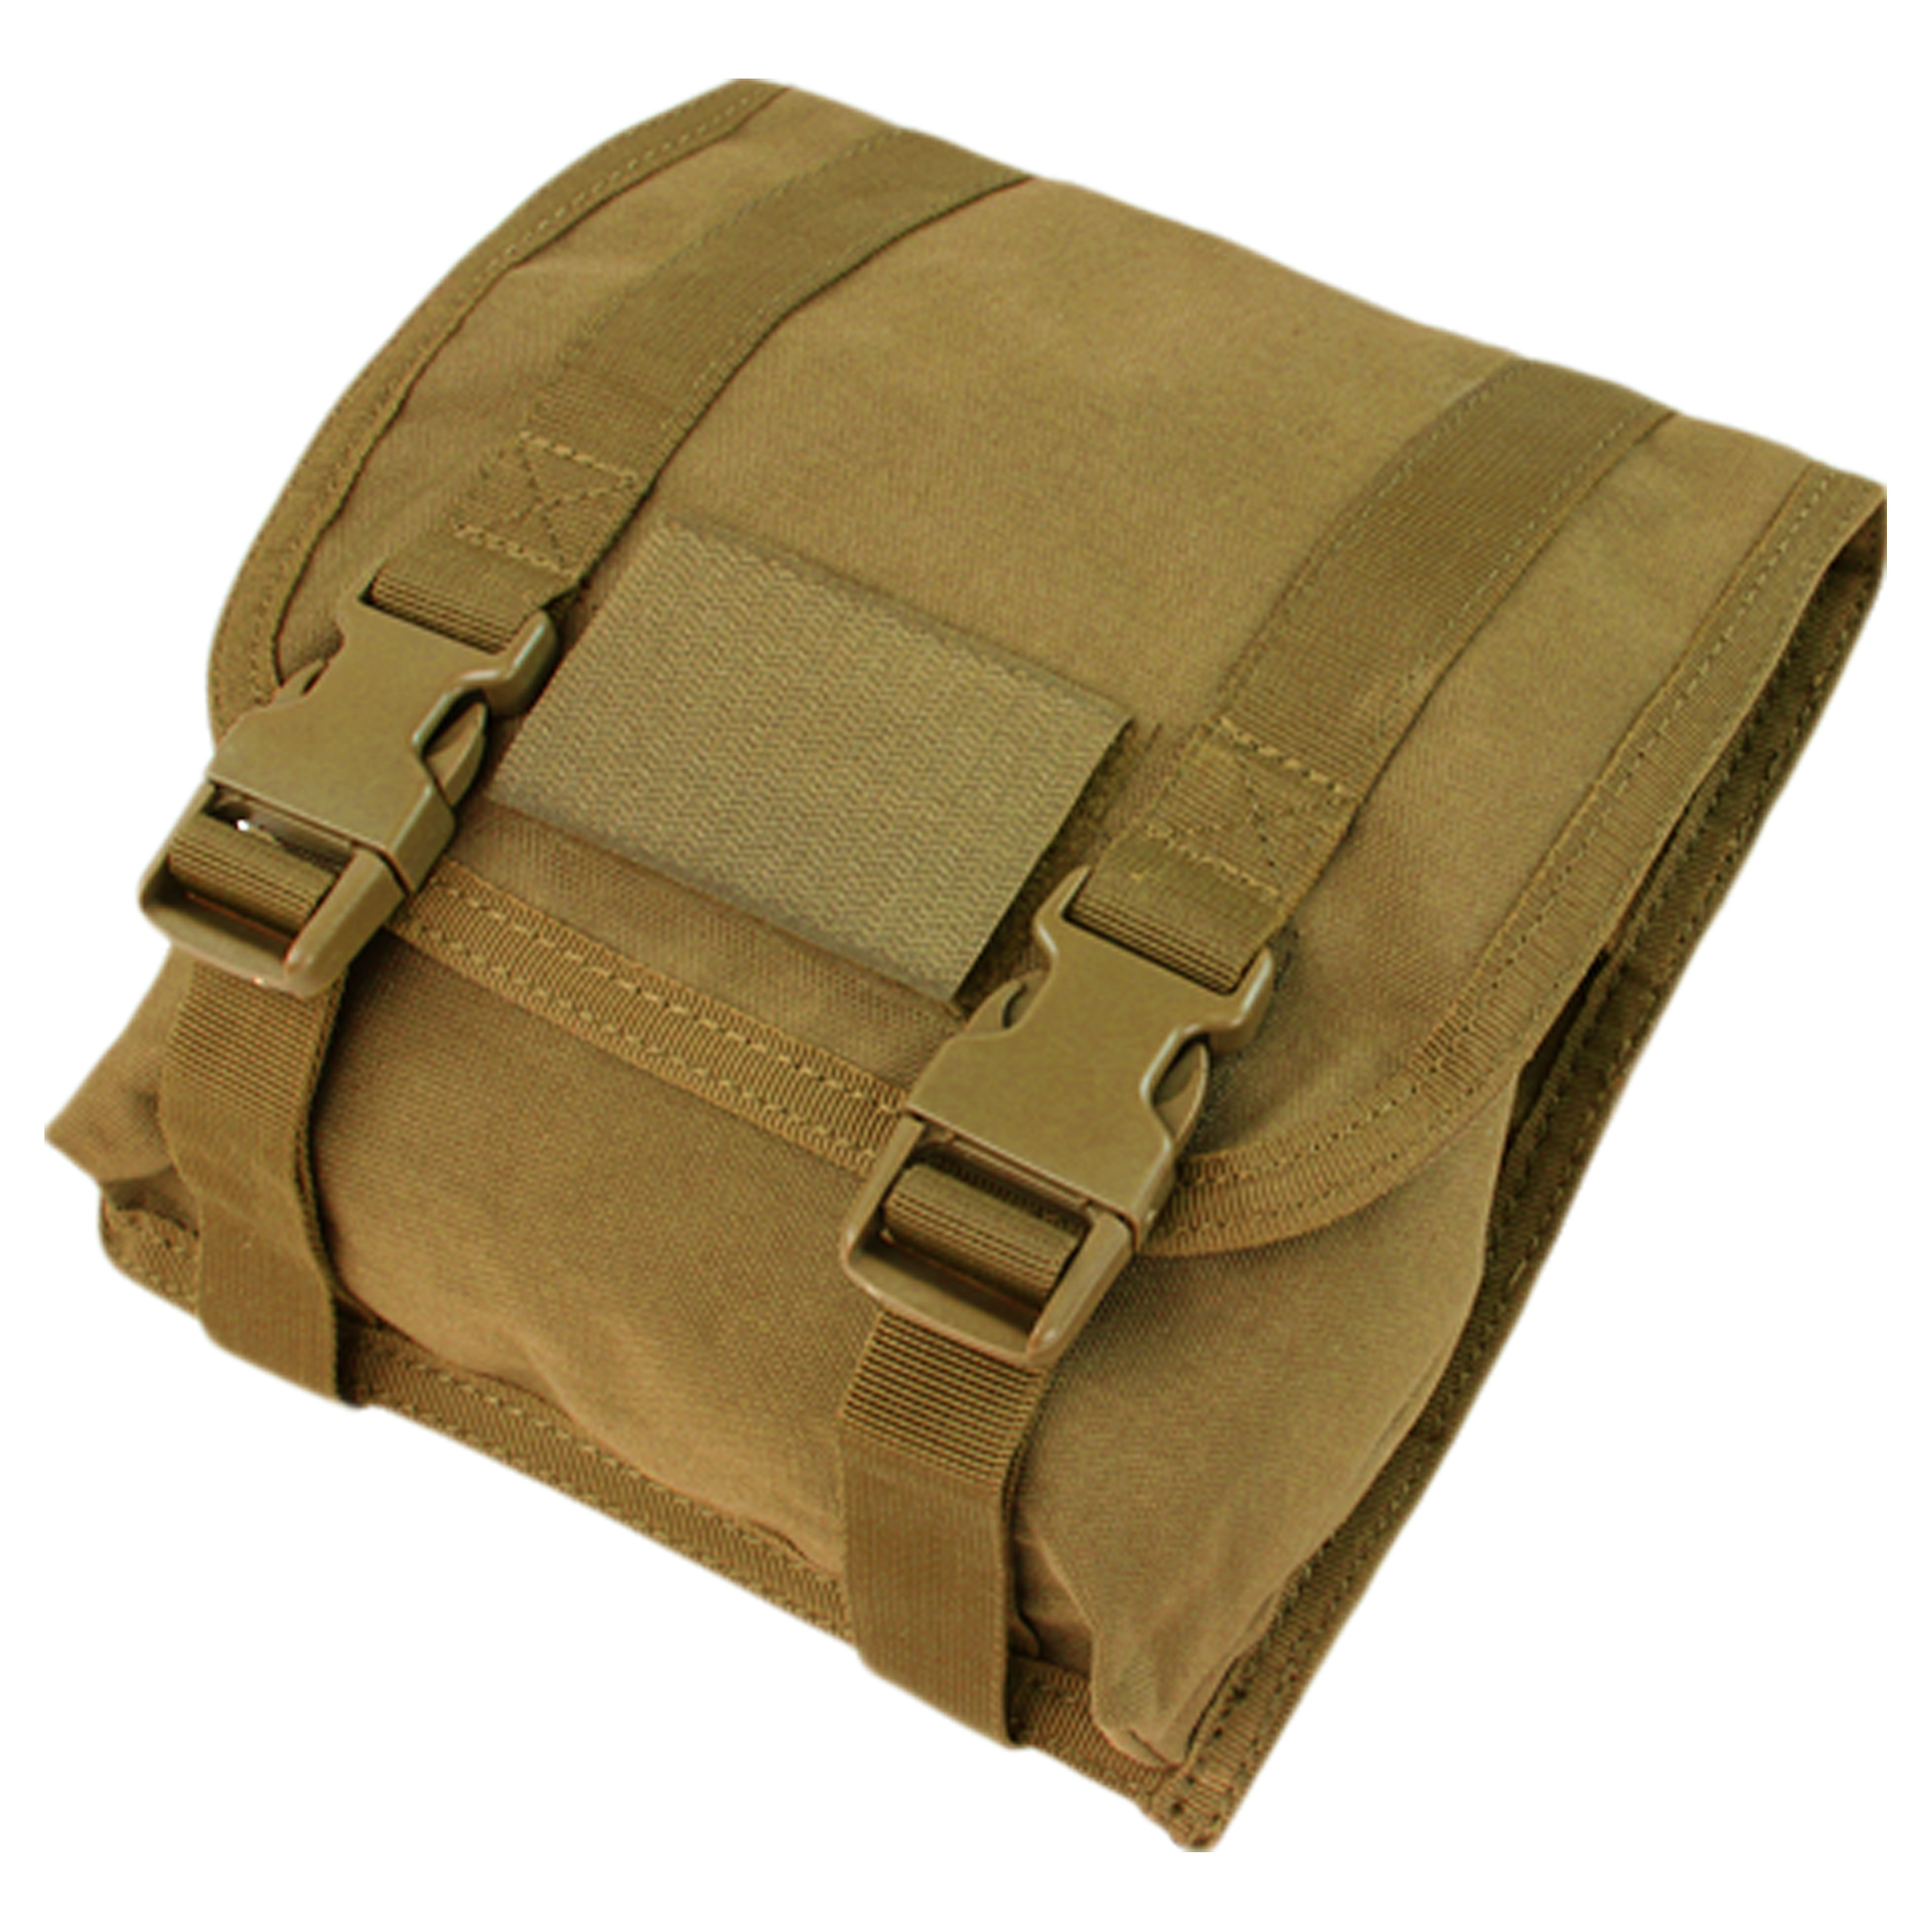 Condor Large Utility Pouch coyote